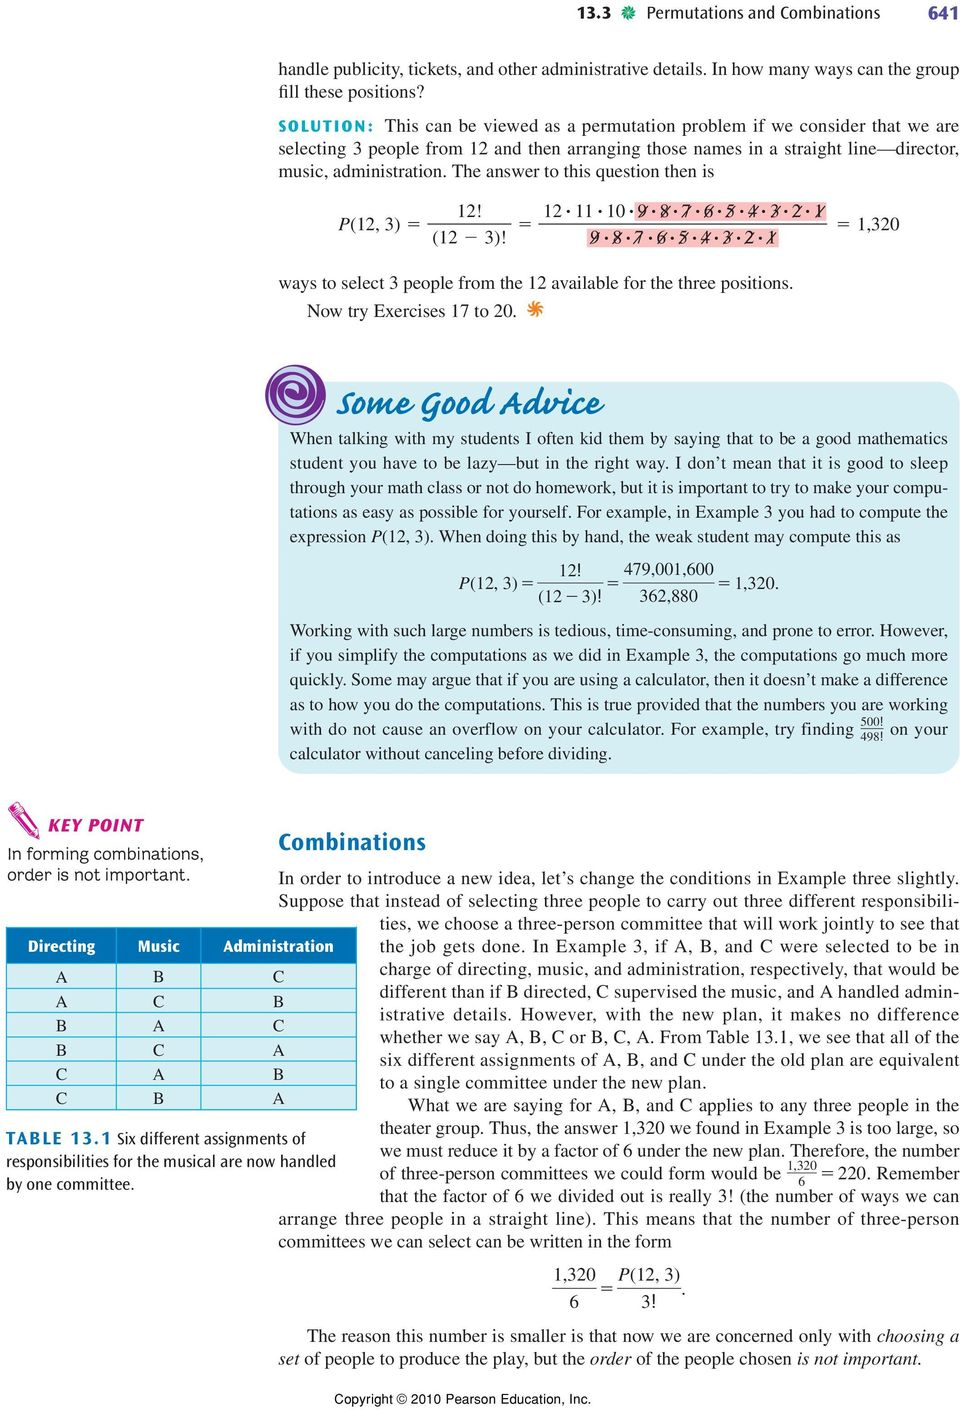 13.3. Permutations and Combinations Objectives. Permutations - PDF